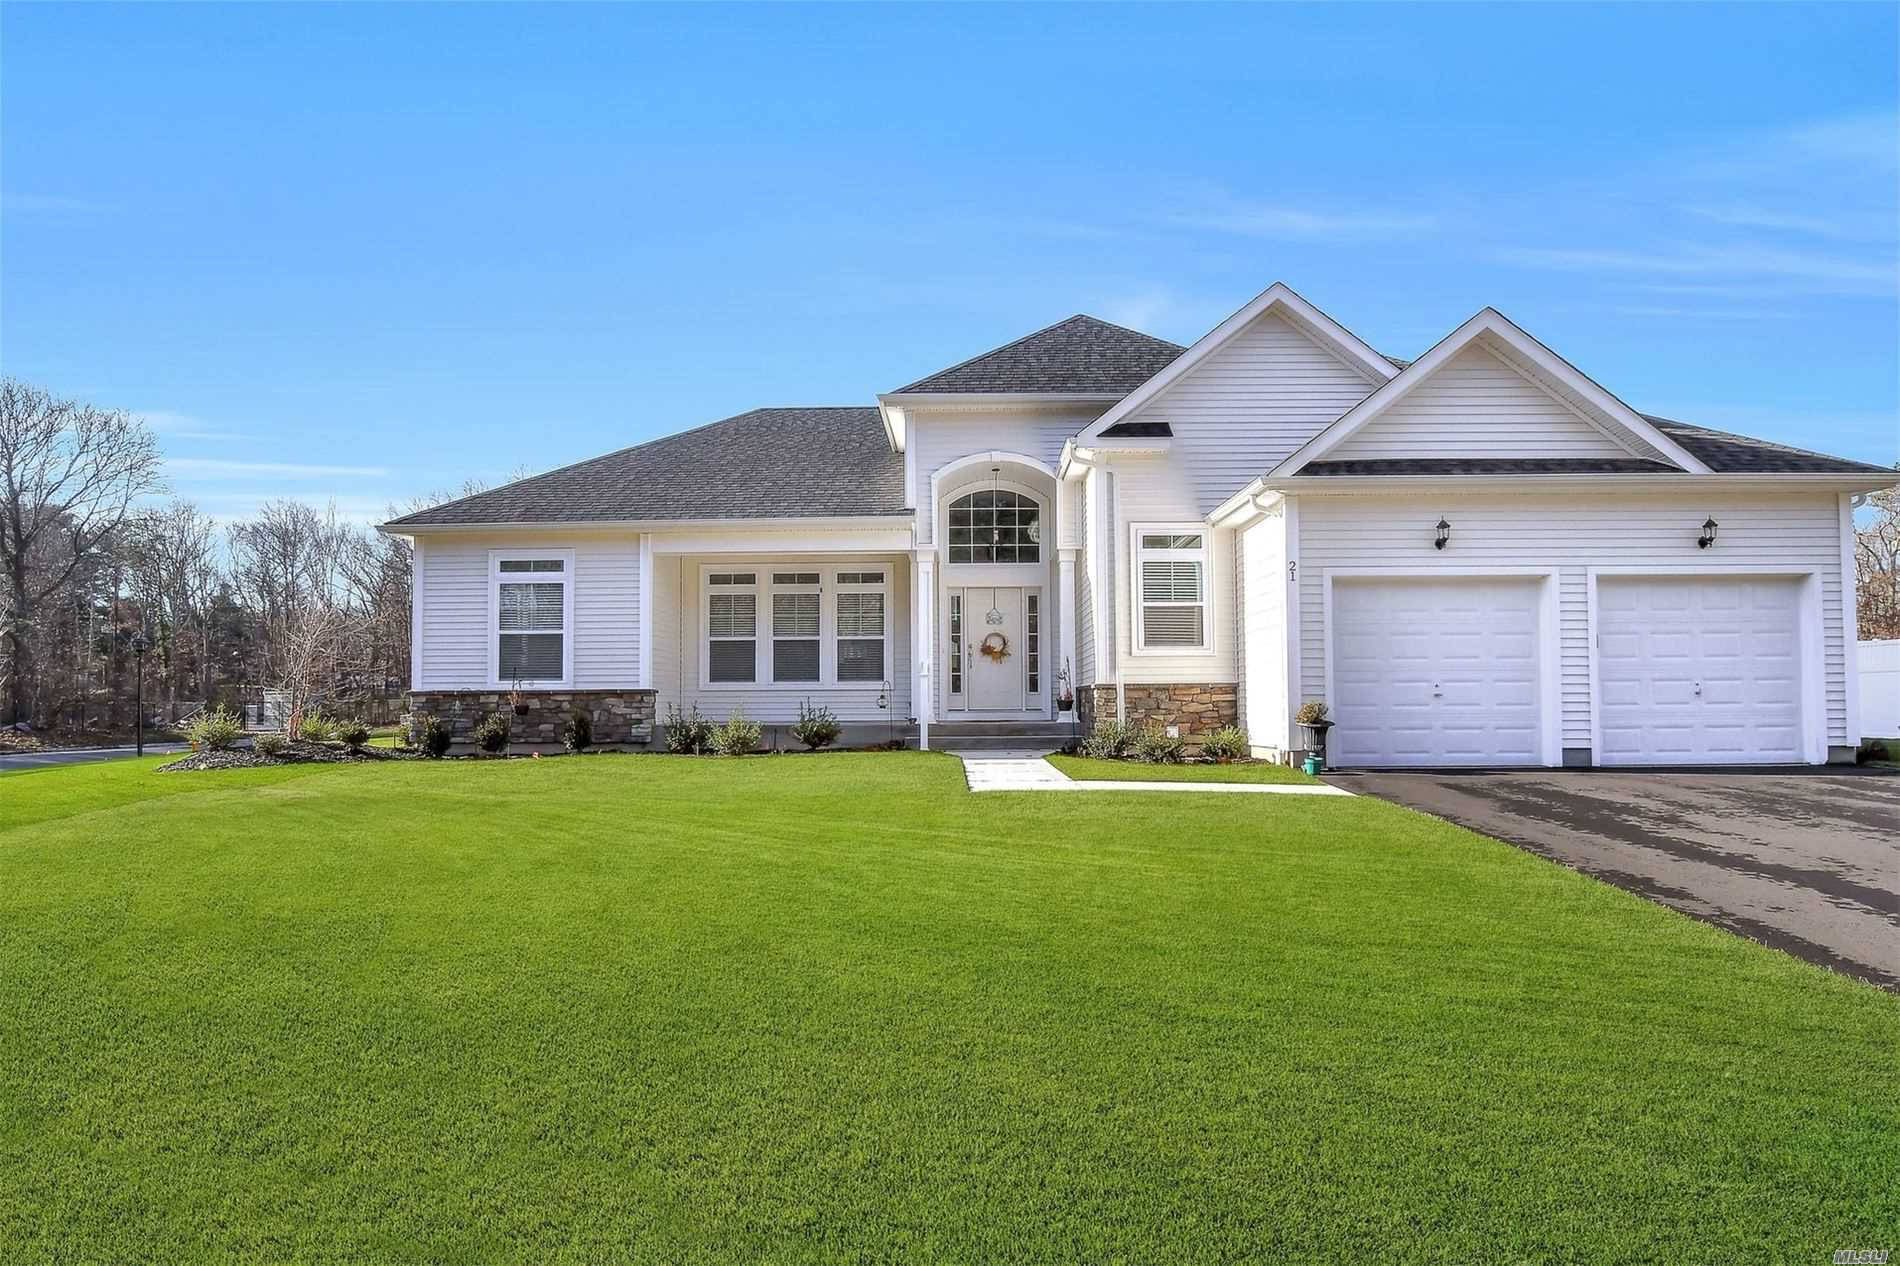 Fabulous open floor plan ranch in desirable Country Point Estates subdivision. Only 6mos old!!! Soaring ceilings, walls of windows, chef's kitchen w/stone counters, gleaming oak floors thruout.